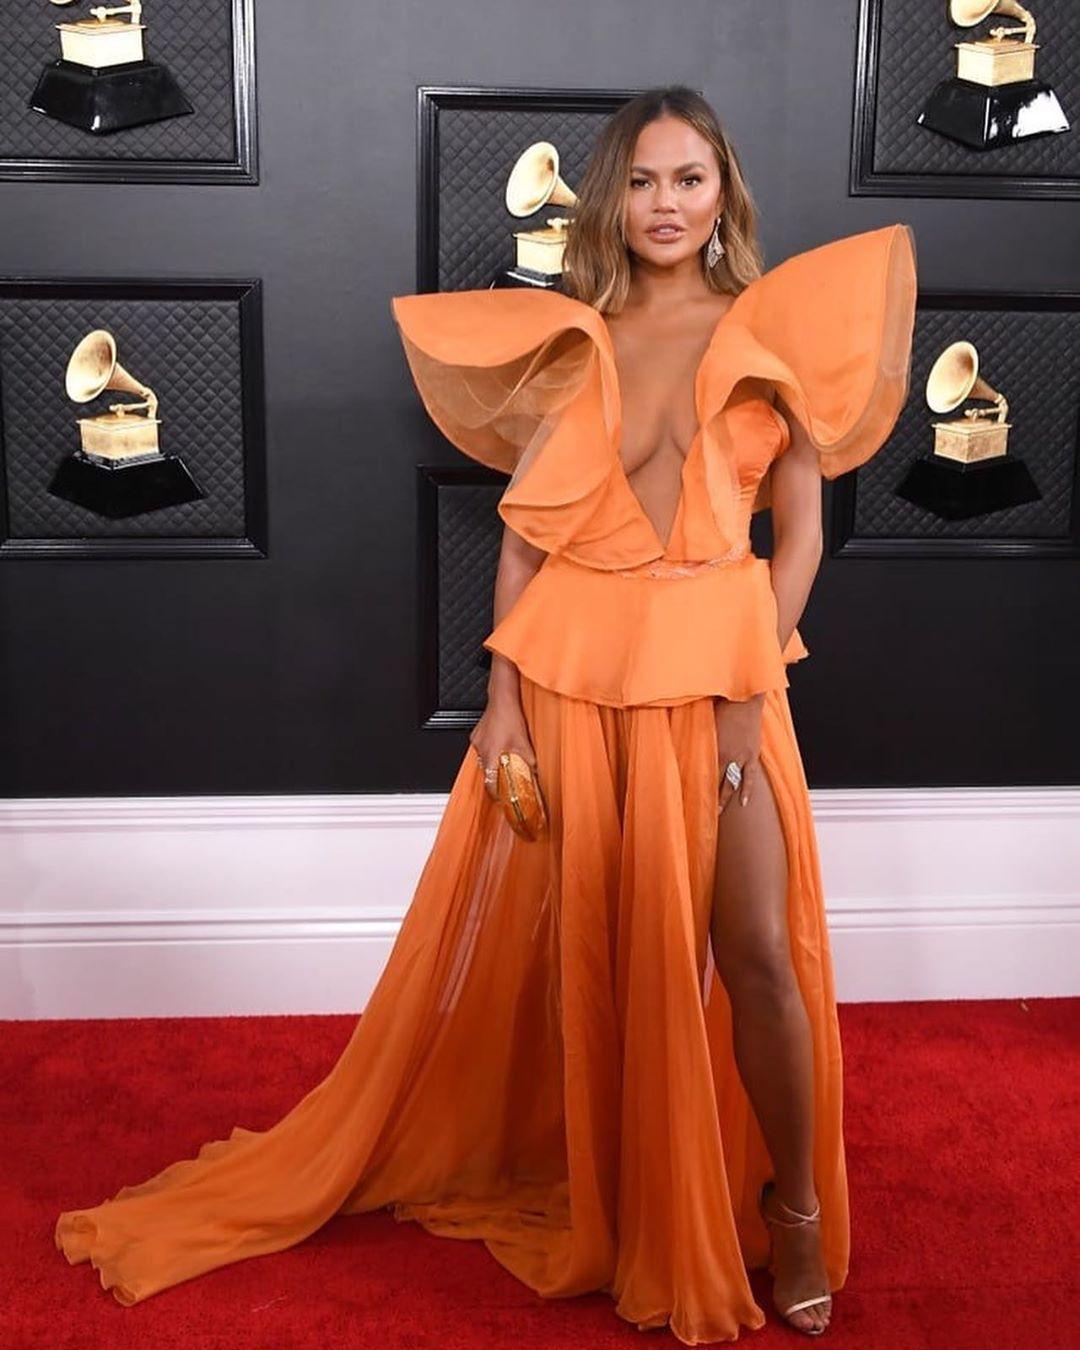 Popsugar On Instagram Thigh High Slits Will Never Go Out Of Style Let This Mini Gallery Prove It To You And If You Re Sti In 2020 Red Carpet Fashion Best Dressed Grammys